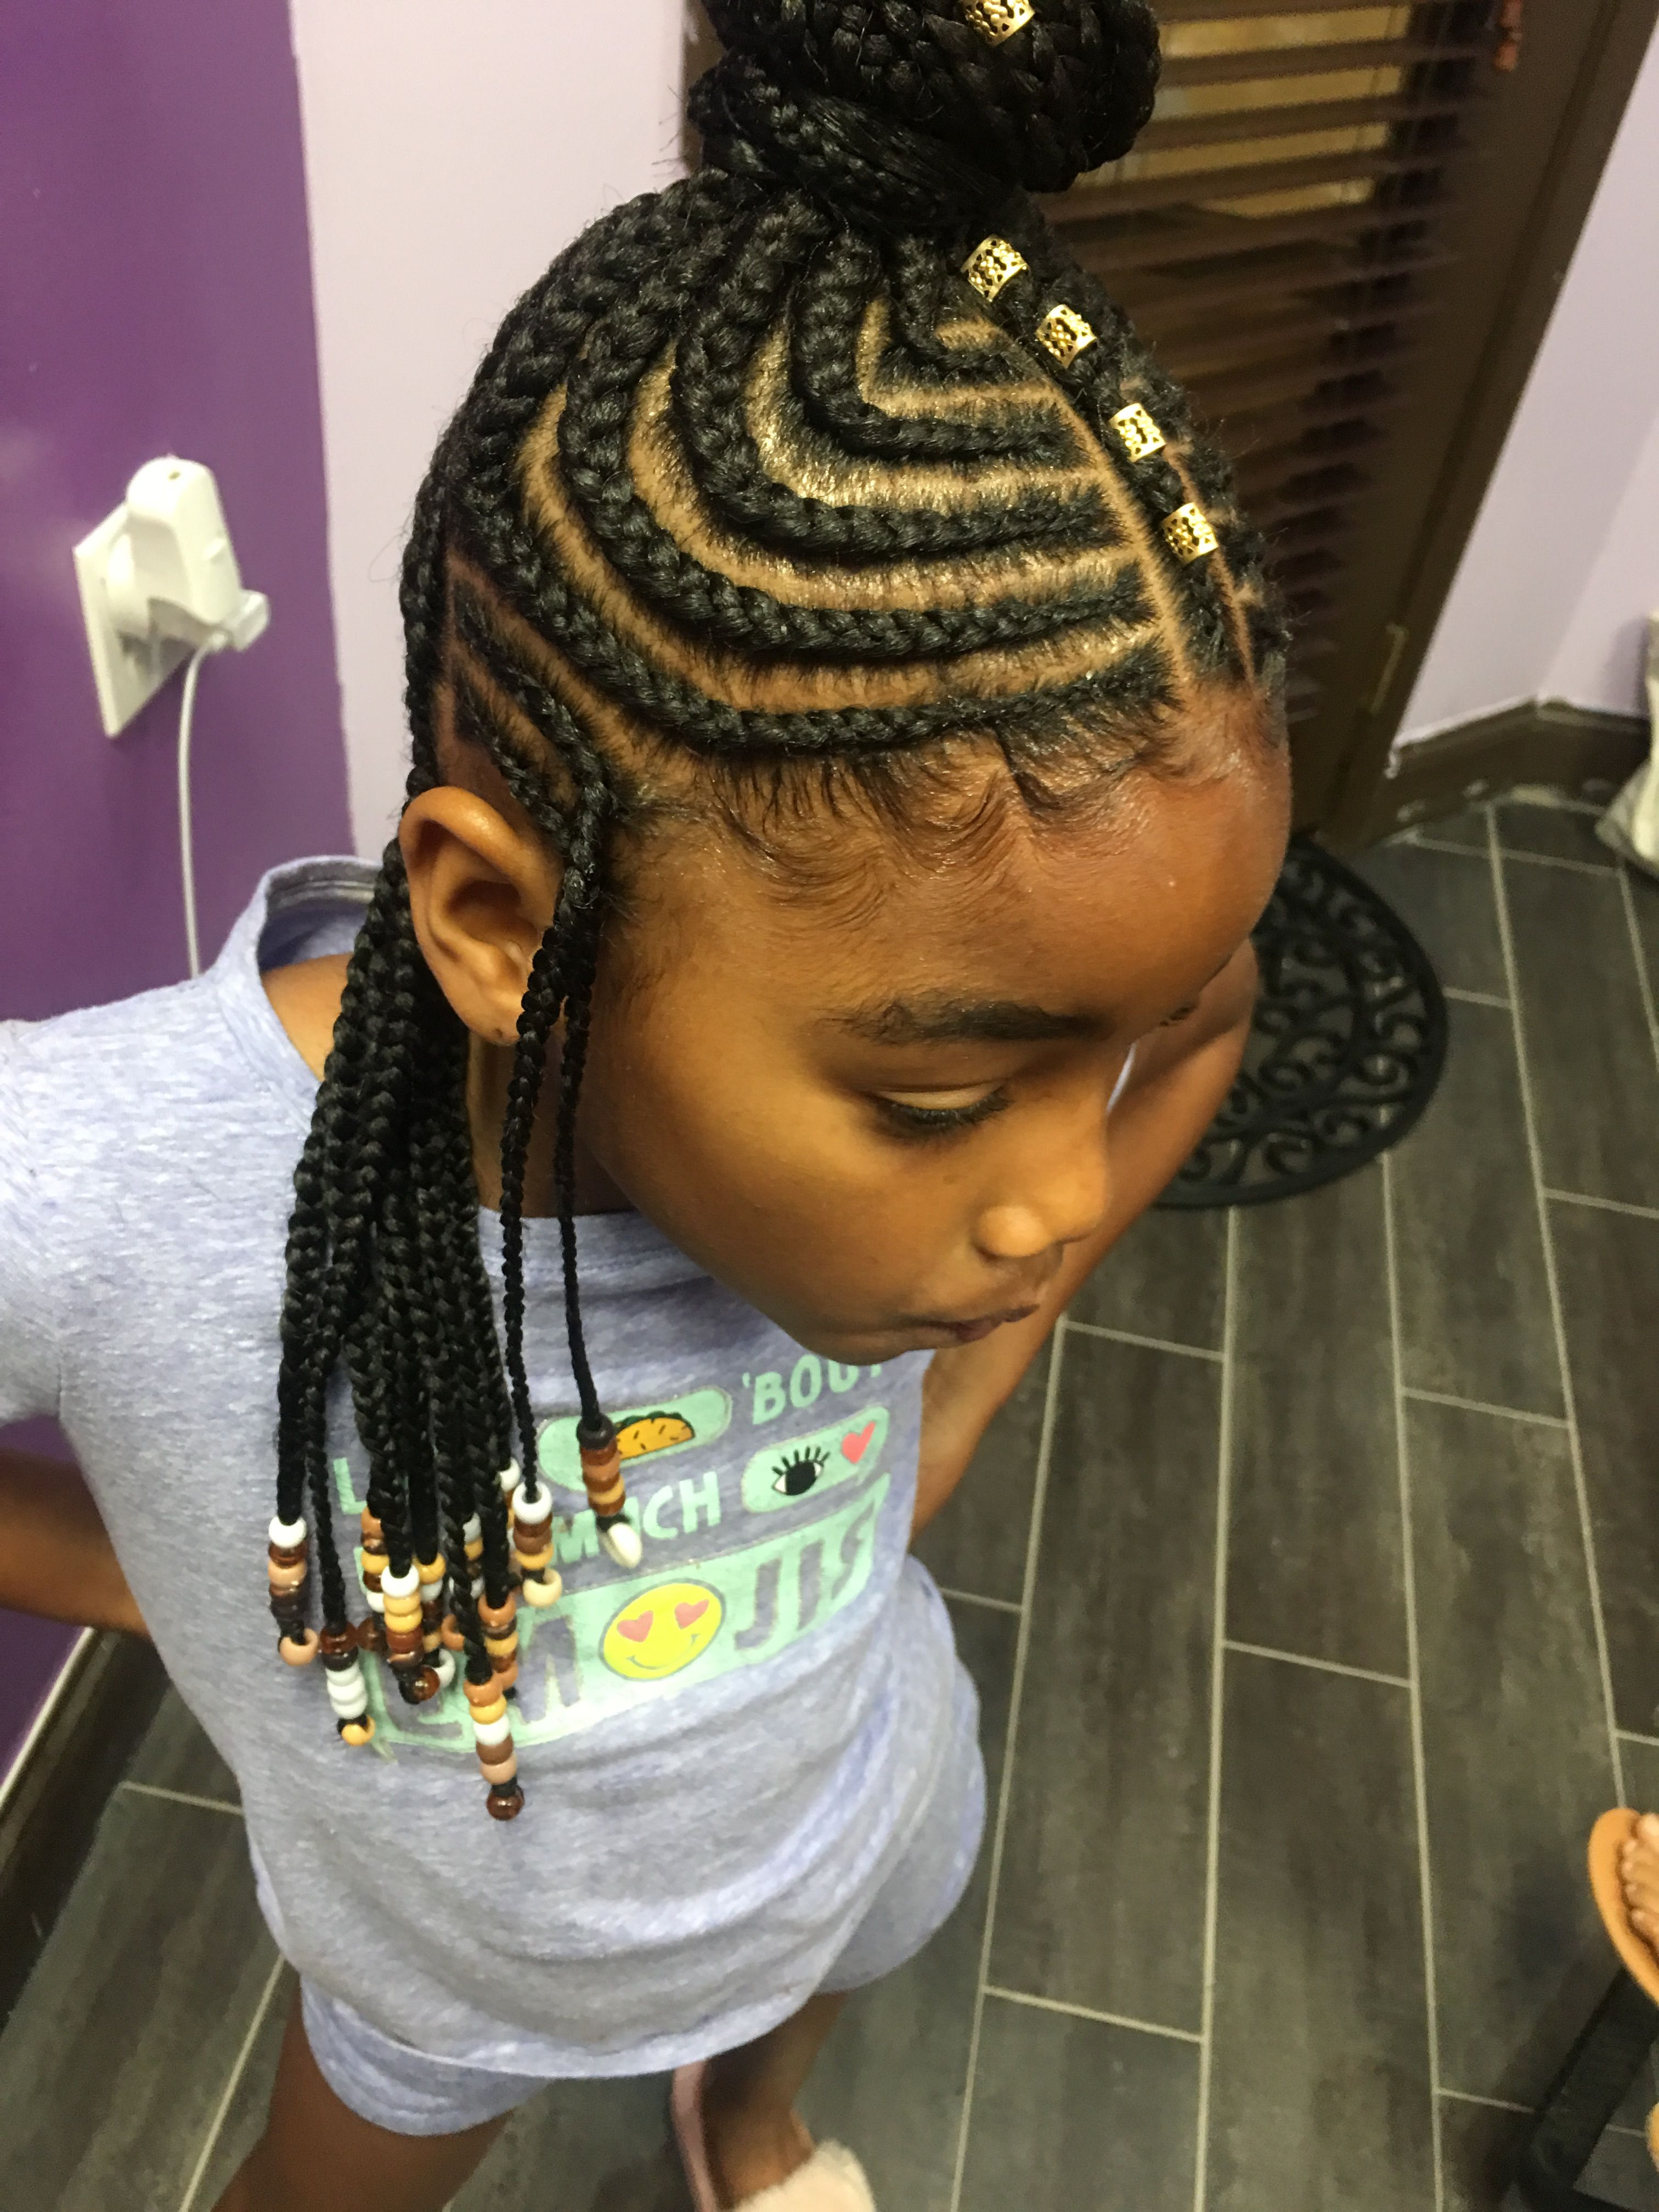 Kids Tribal Braids By Shugabraids Black Kids Braids Hairstyles Little Girl Braid Hairstyles Little Girl Braids